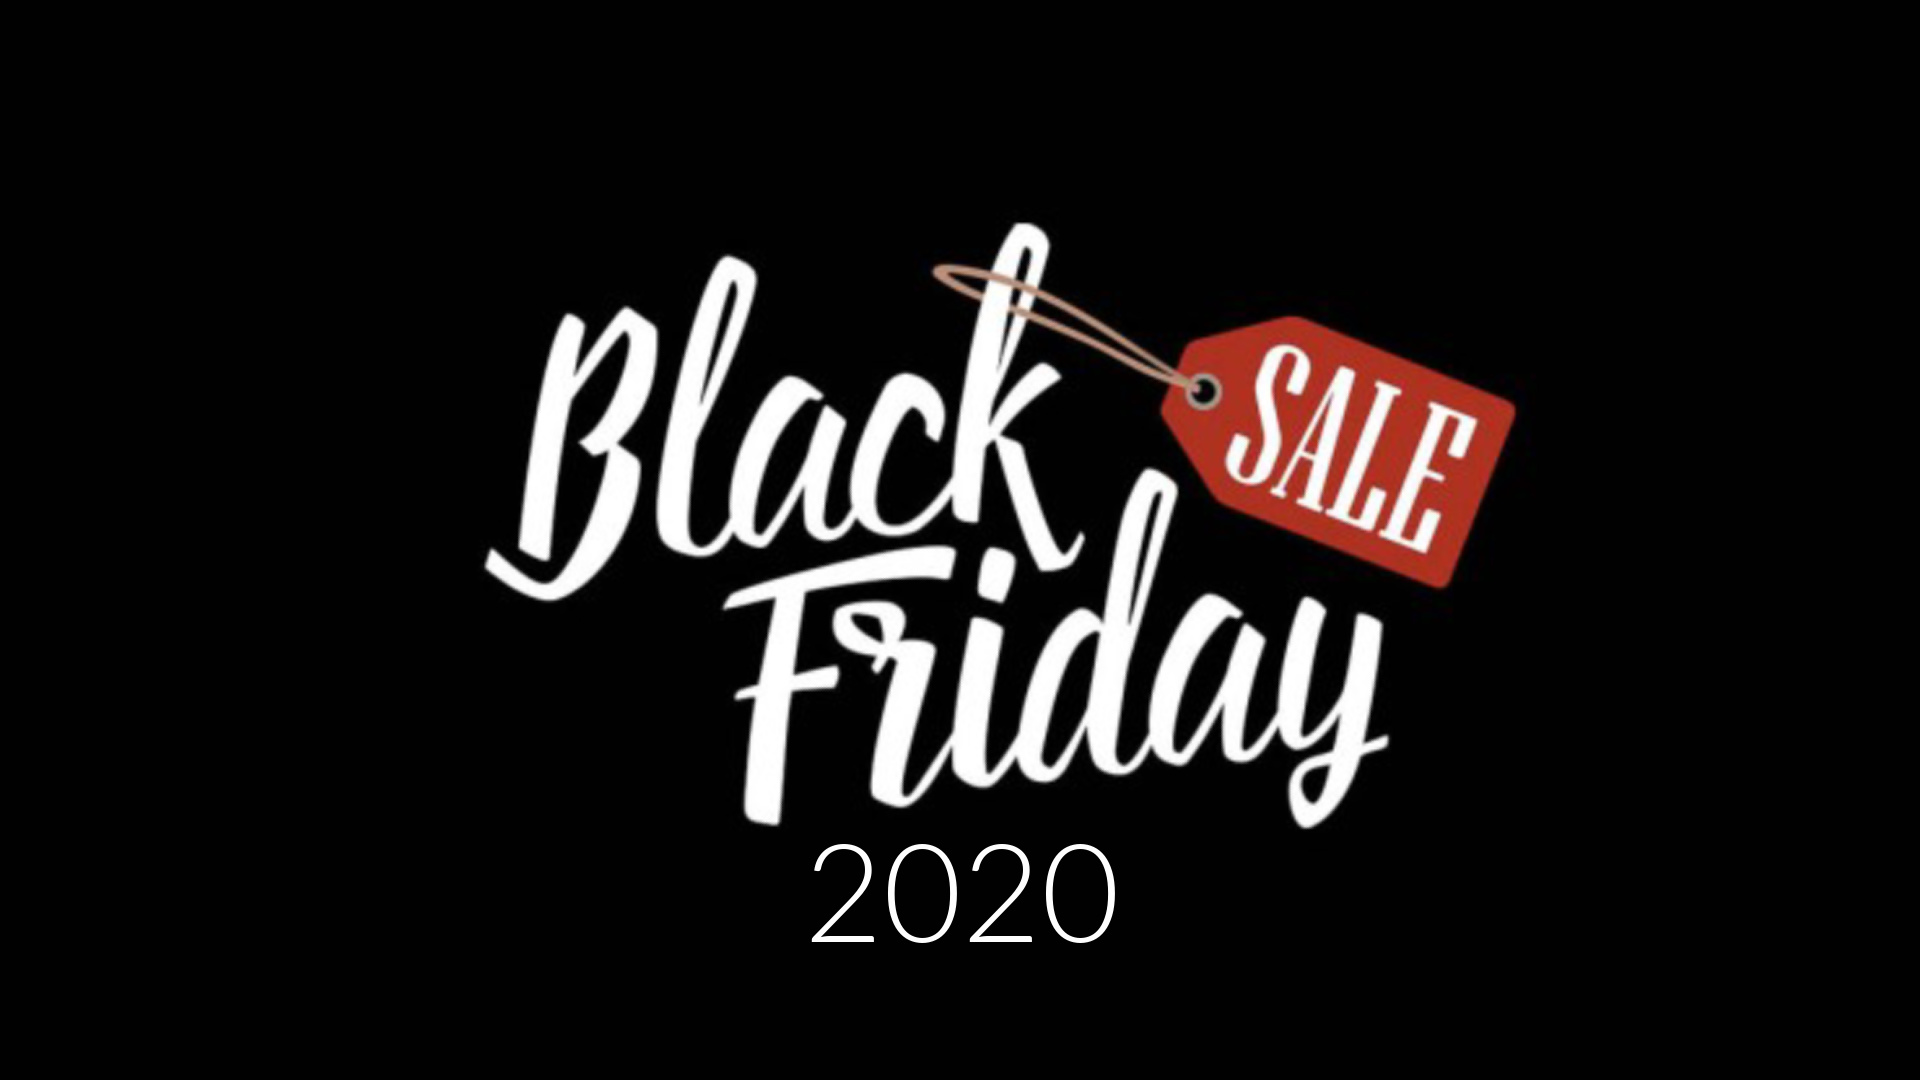 Black Friday 2020 sales misscrystal